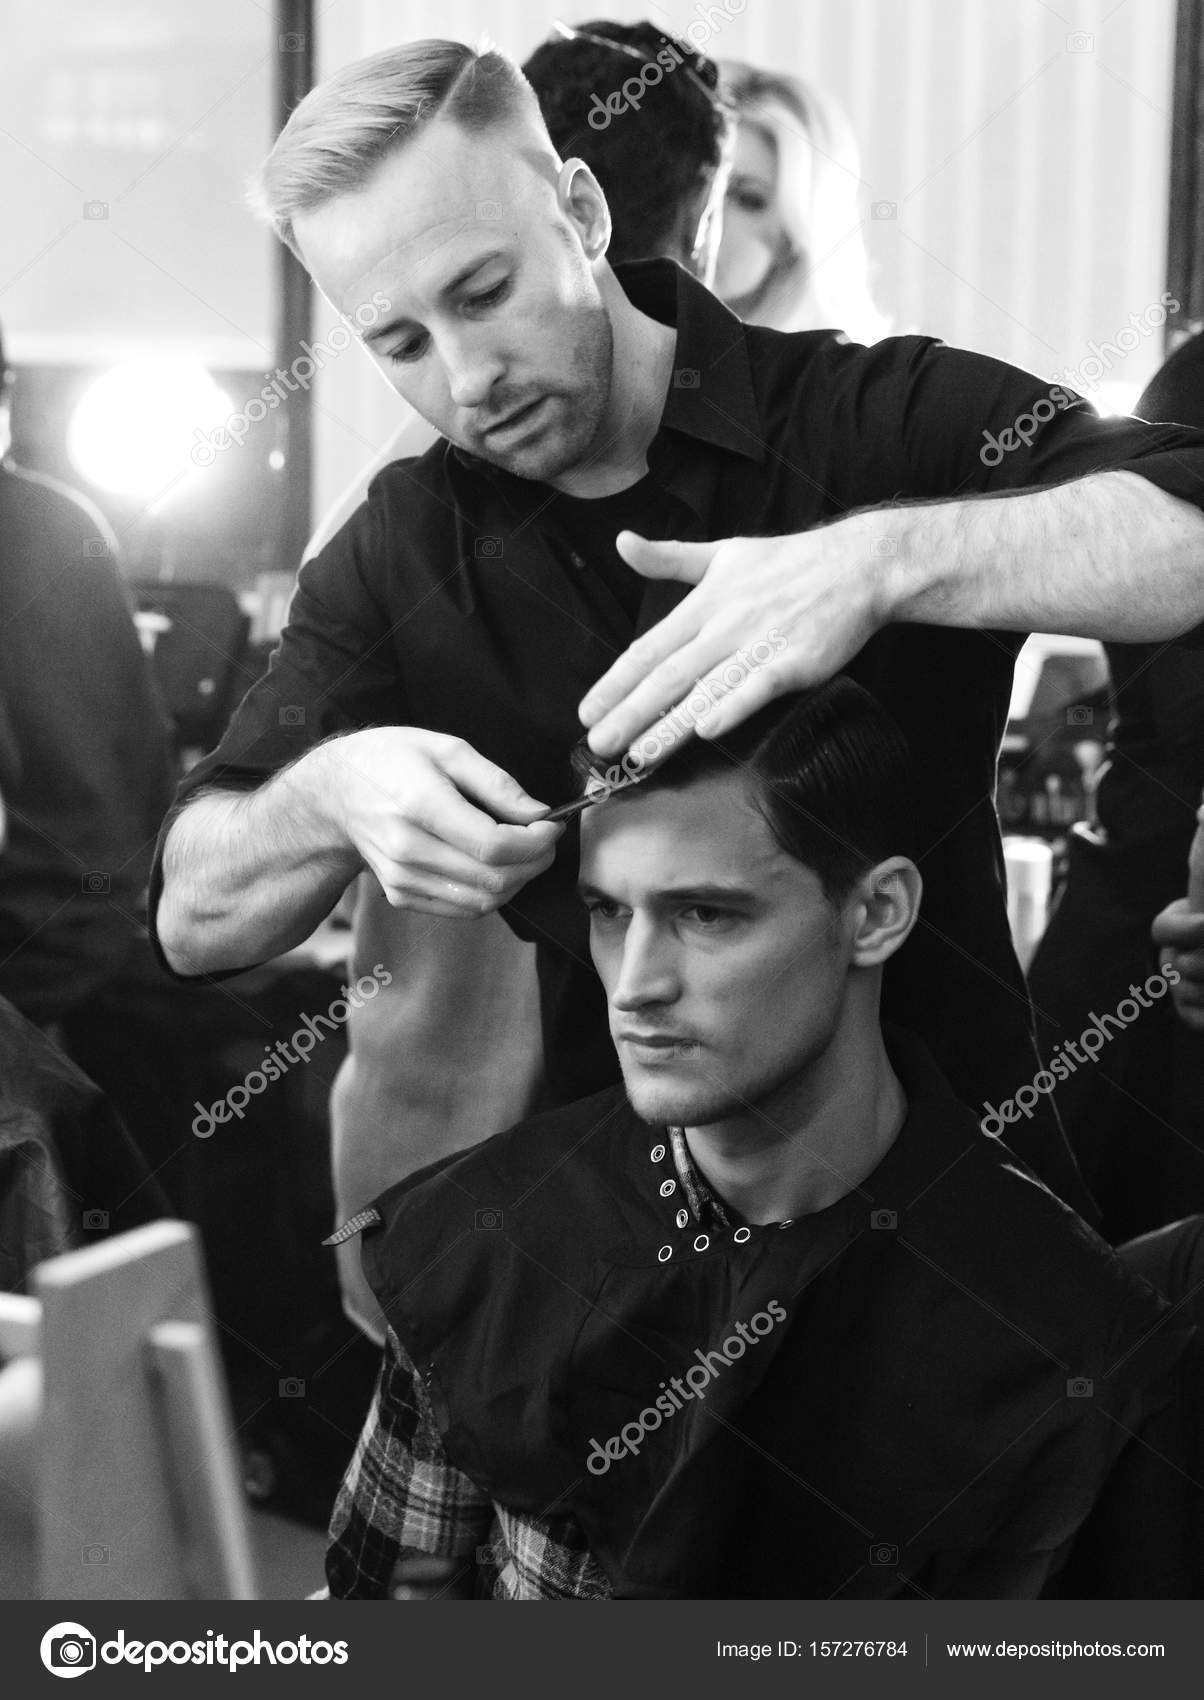 73f9402ca5 Joseph Abboud - Men Spring Summer 2017 Collection - Backstage — Stock Photo